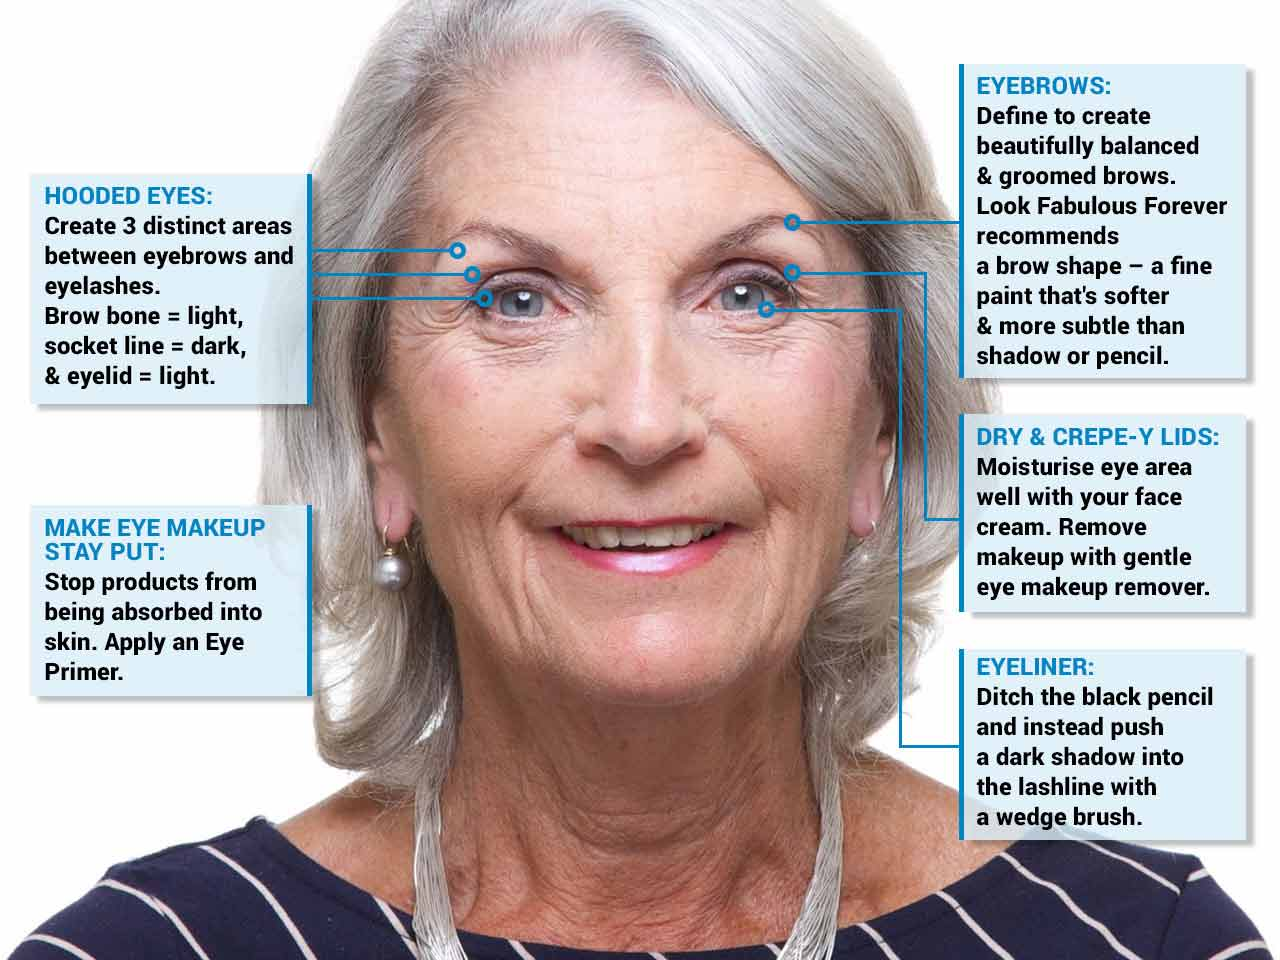 Older woman using makeup to disguise hooded eyes and dark eyelids